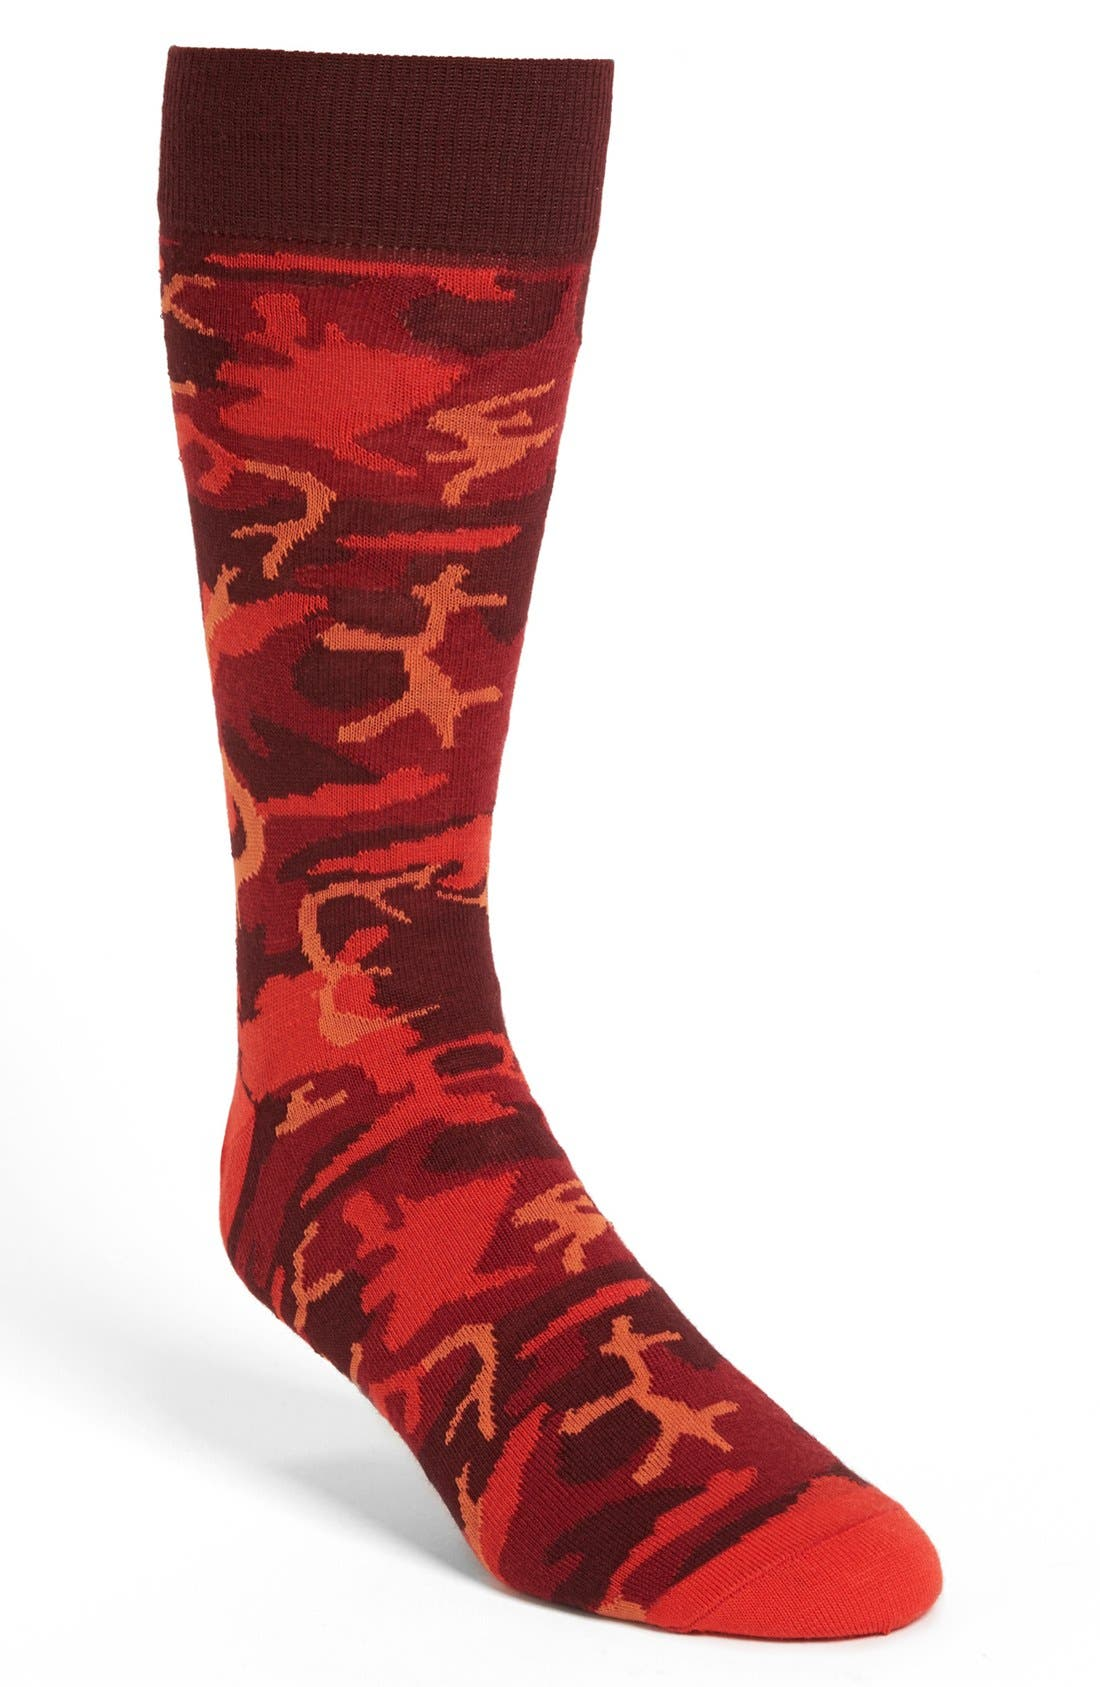 Alternate Image 1 Selected - Lorenzo Uomo Camouflage Socks (Men)